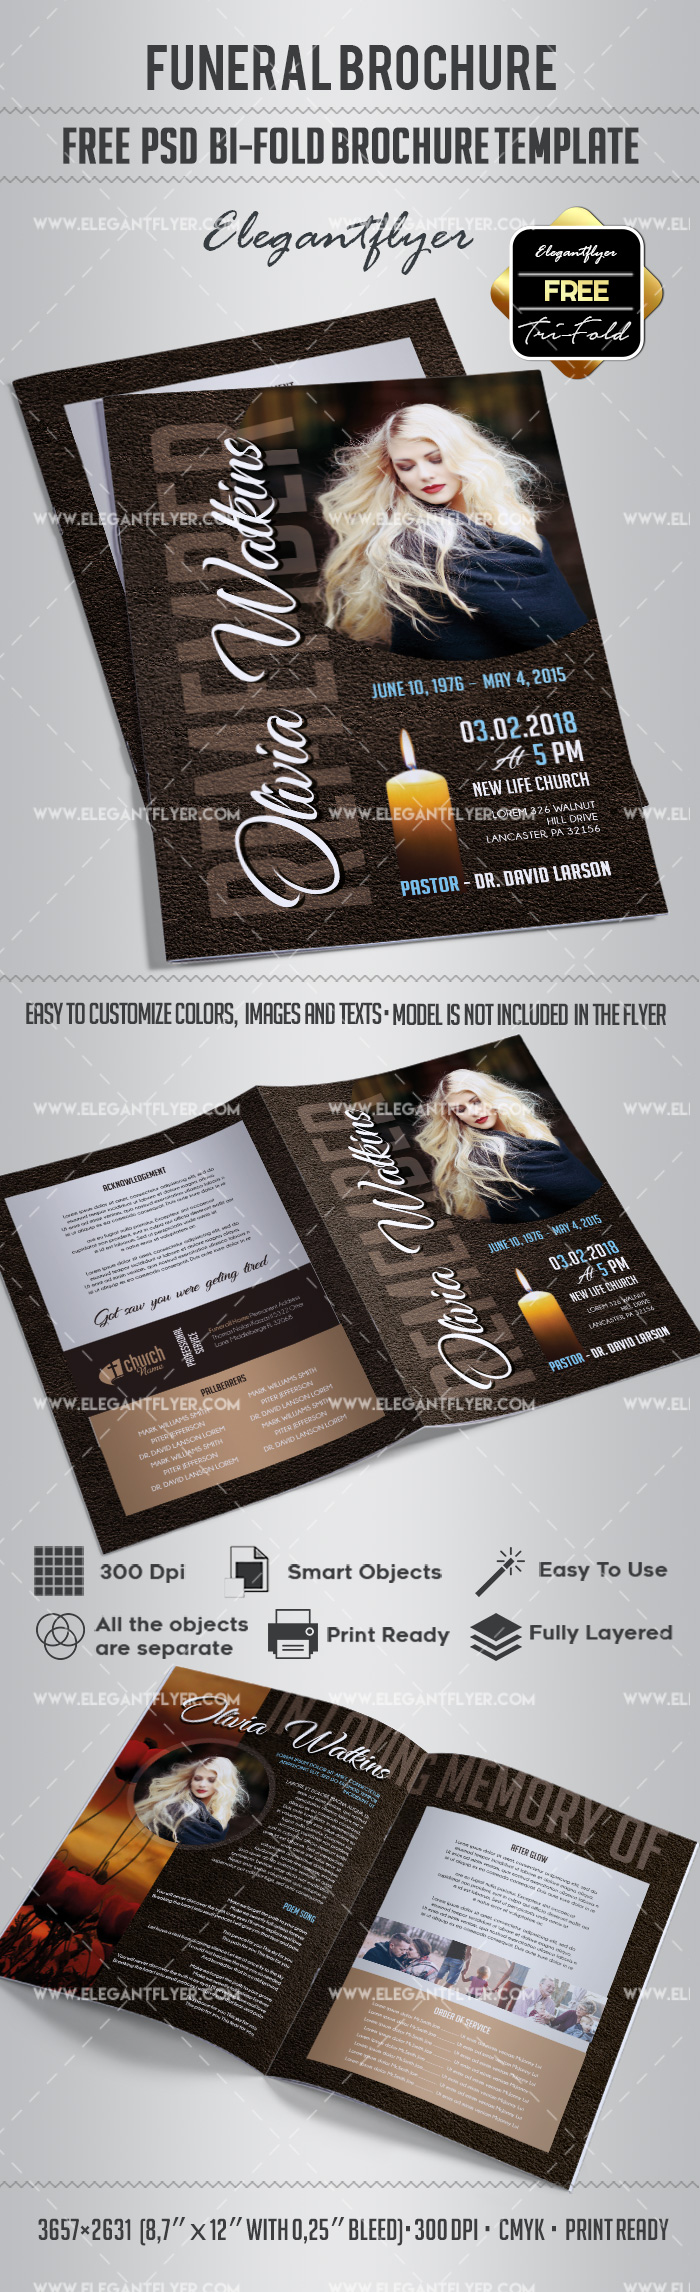 Free bi fold brochure for funeral by elegantflyer for Free bi fold brochure template 2